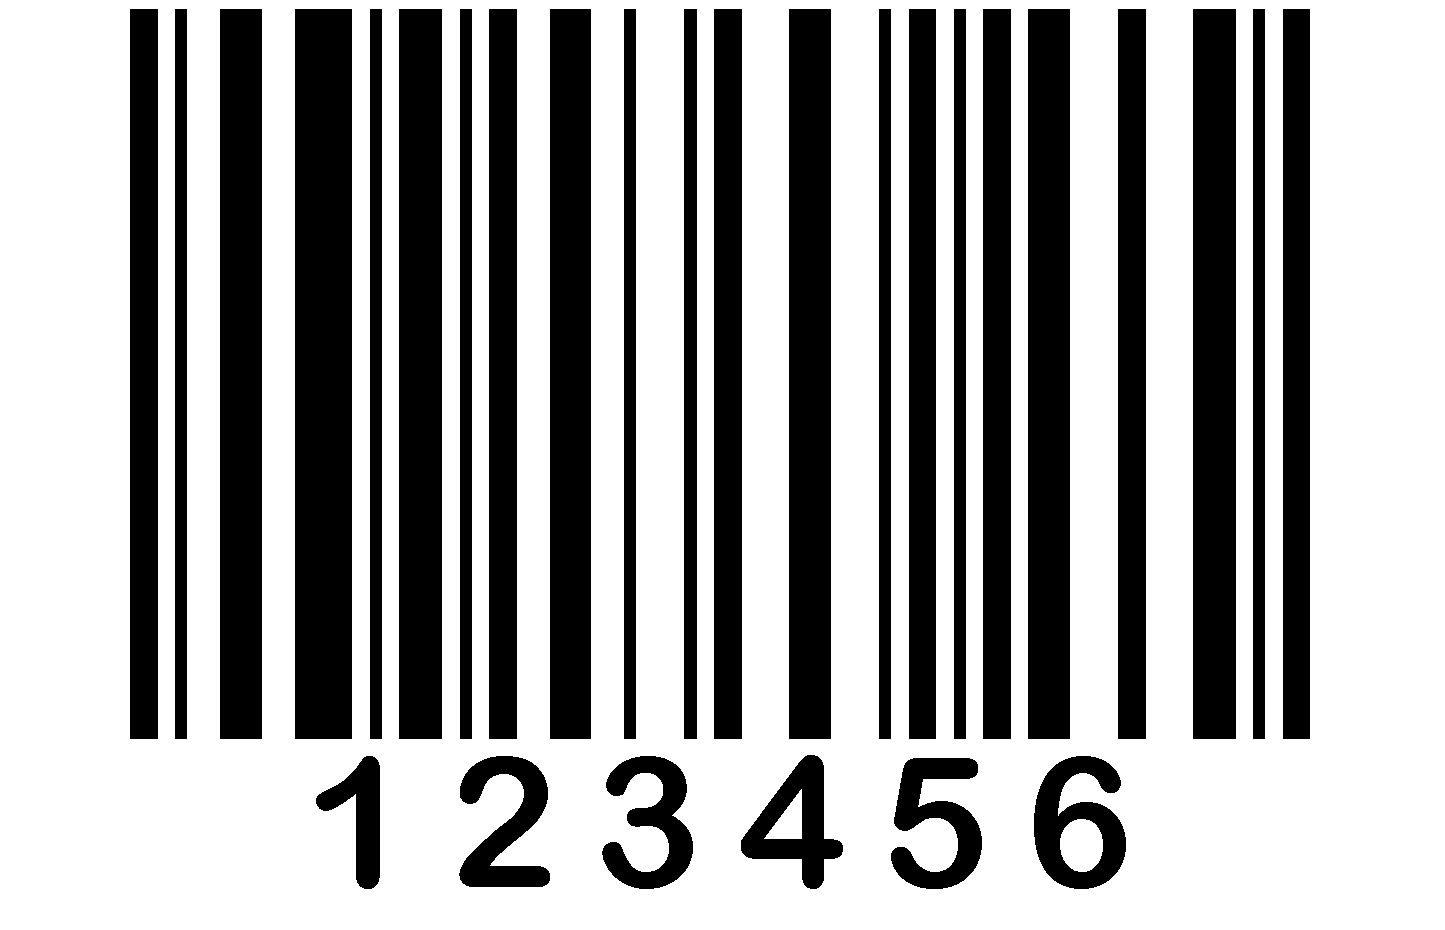 barcode image clipart - photo #31